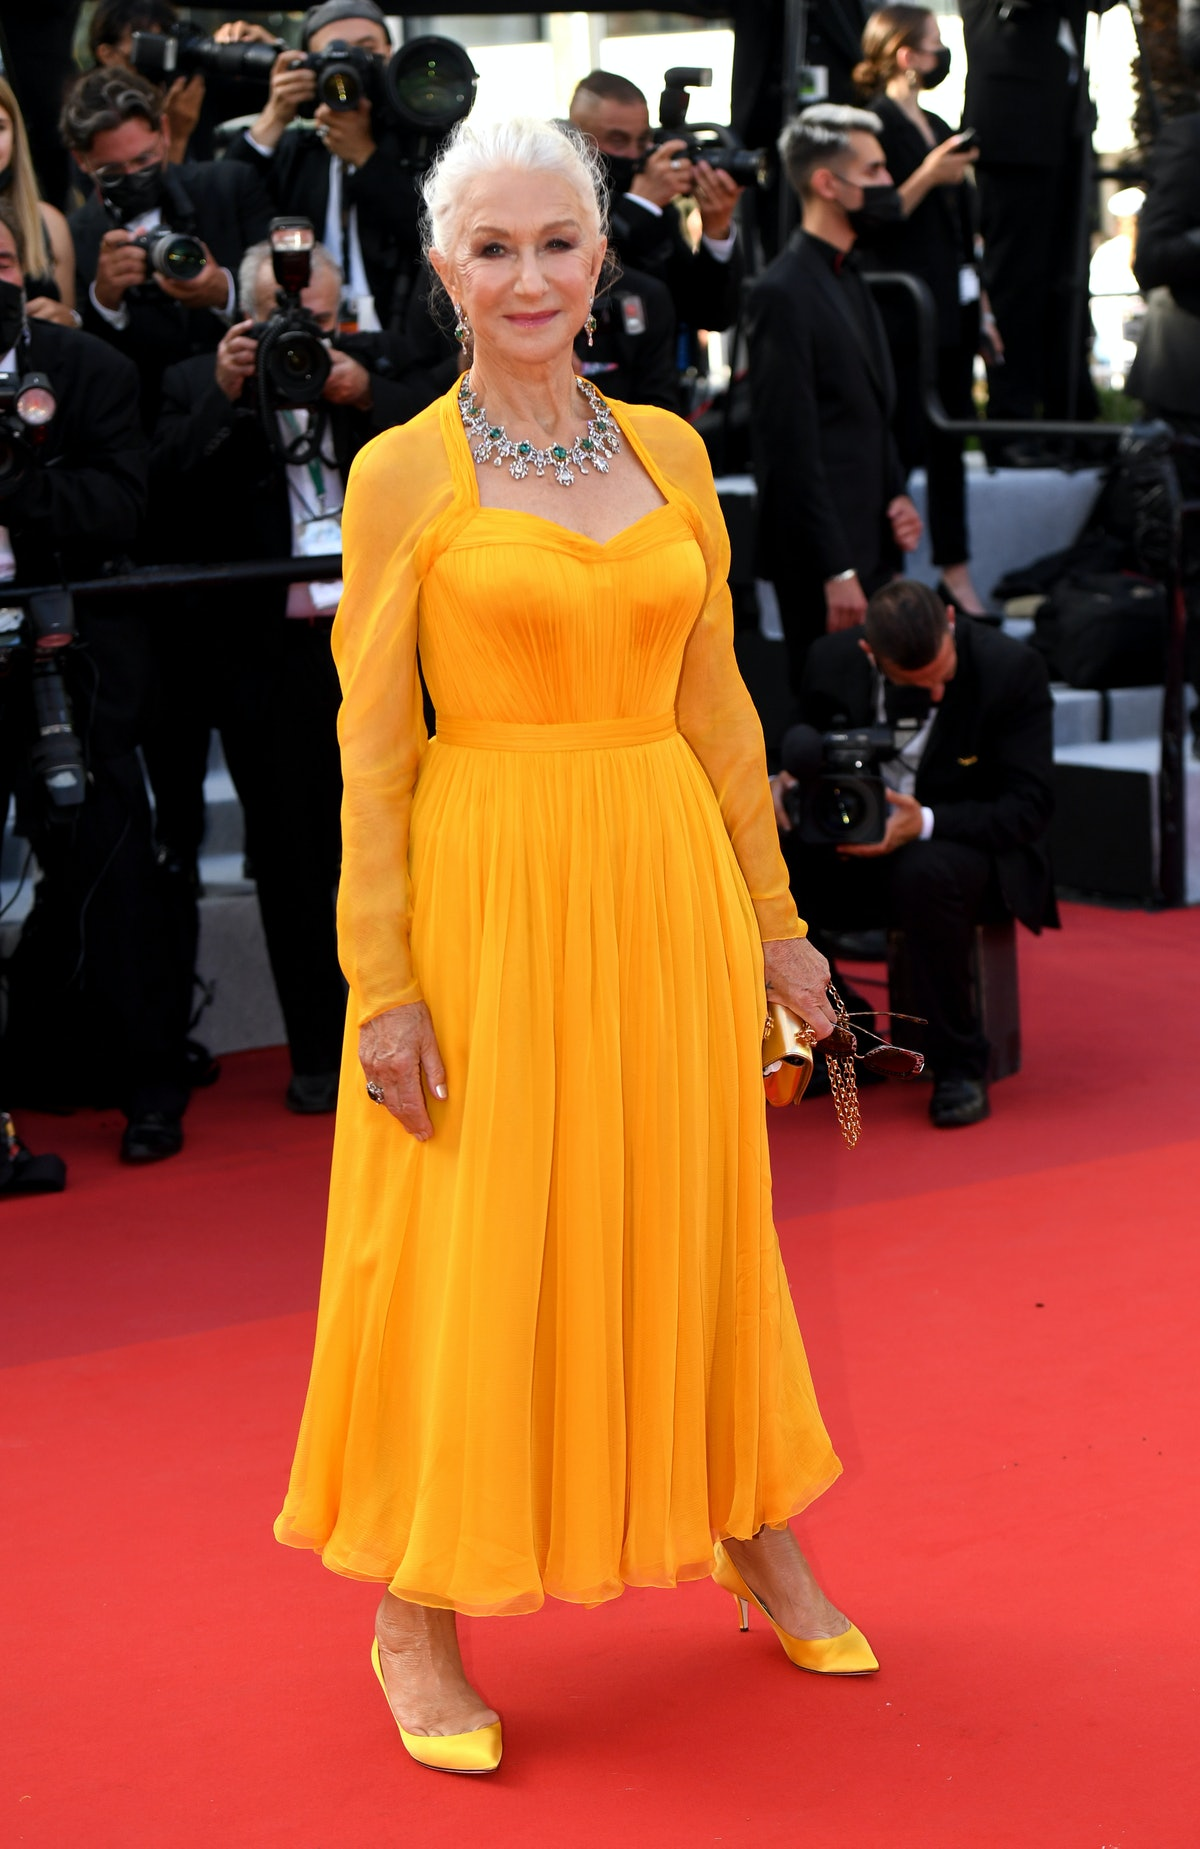 """CANNES, FRANCE - JULY 06: Dame Helen Mirren attends the """"Annette"""" screening and opening ceremony during the 74th annual Cannes Film Festival on July 06, 2021 in Cannes, France. (Photo by Stephane Cardinale - Corbis/Corbis via Getty Images)"""